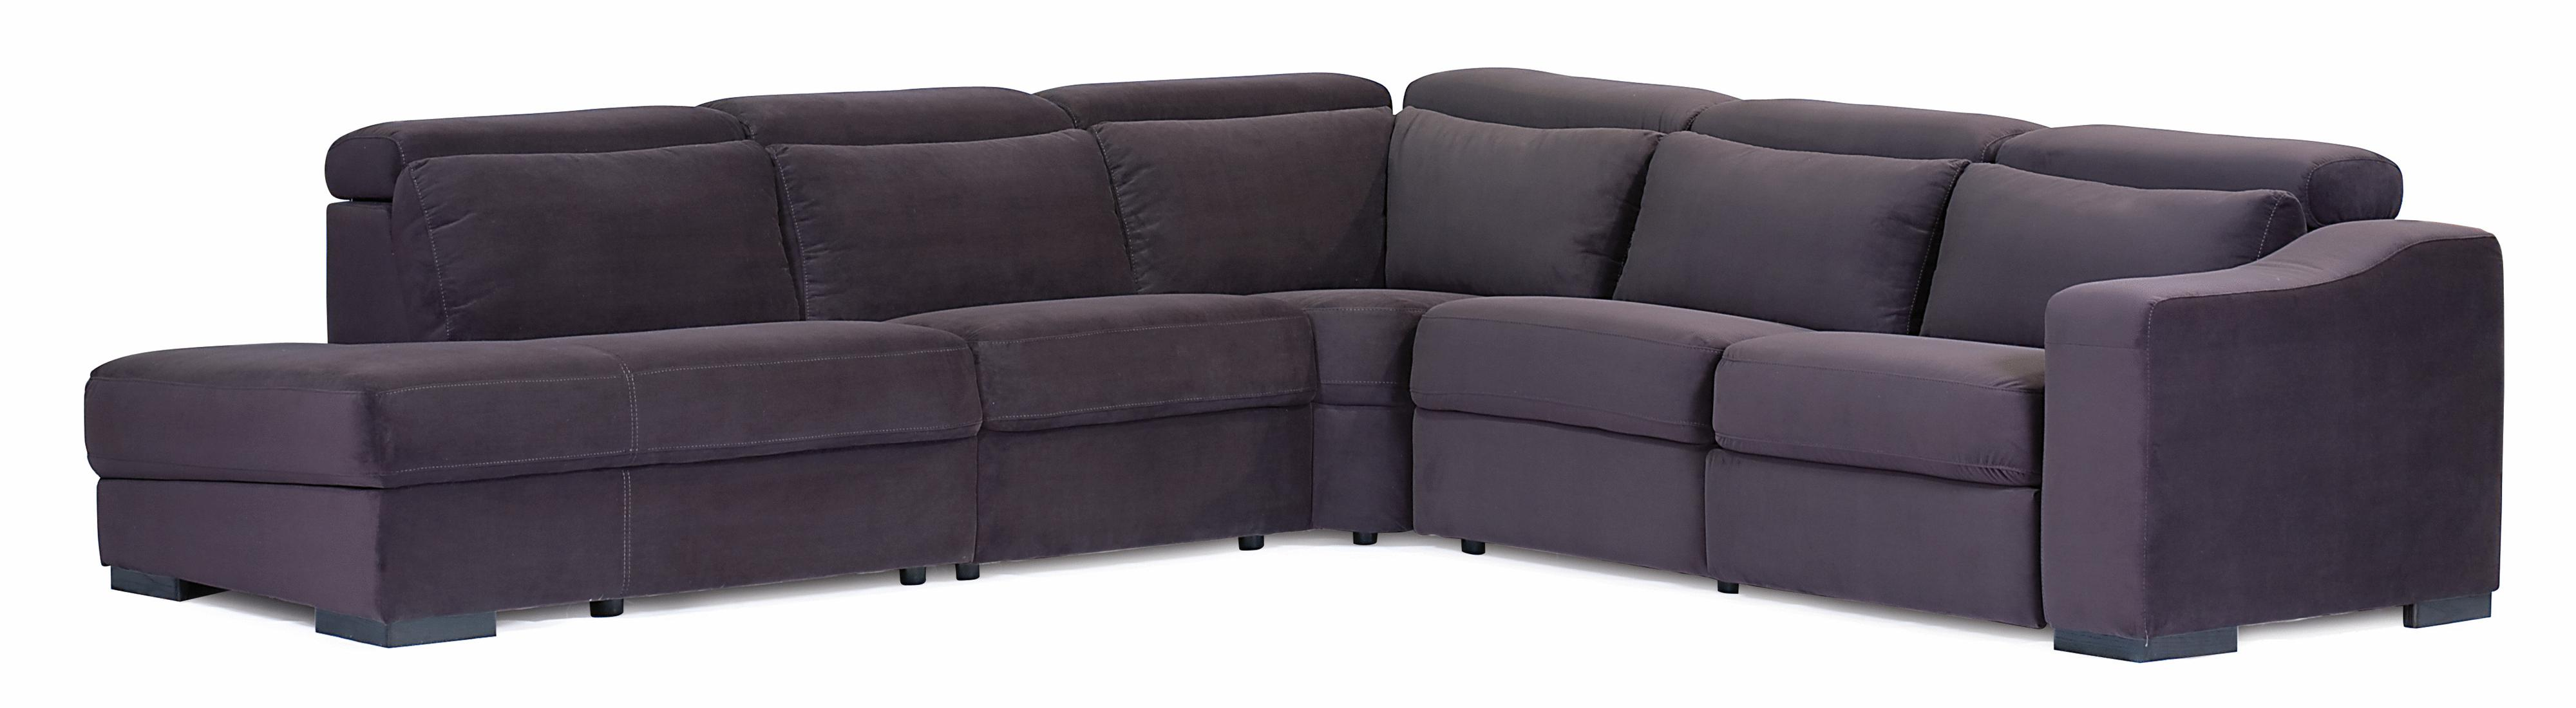 Palliser cortez ii stationary left hand facing 5 pc for 5 pc sectional sofas